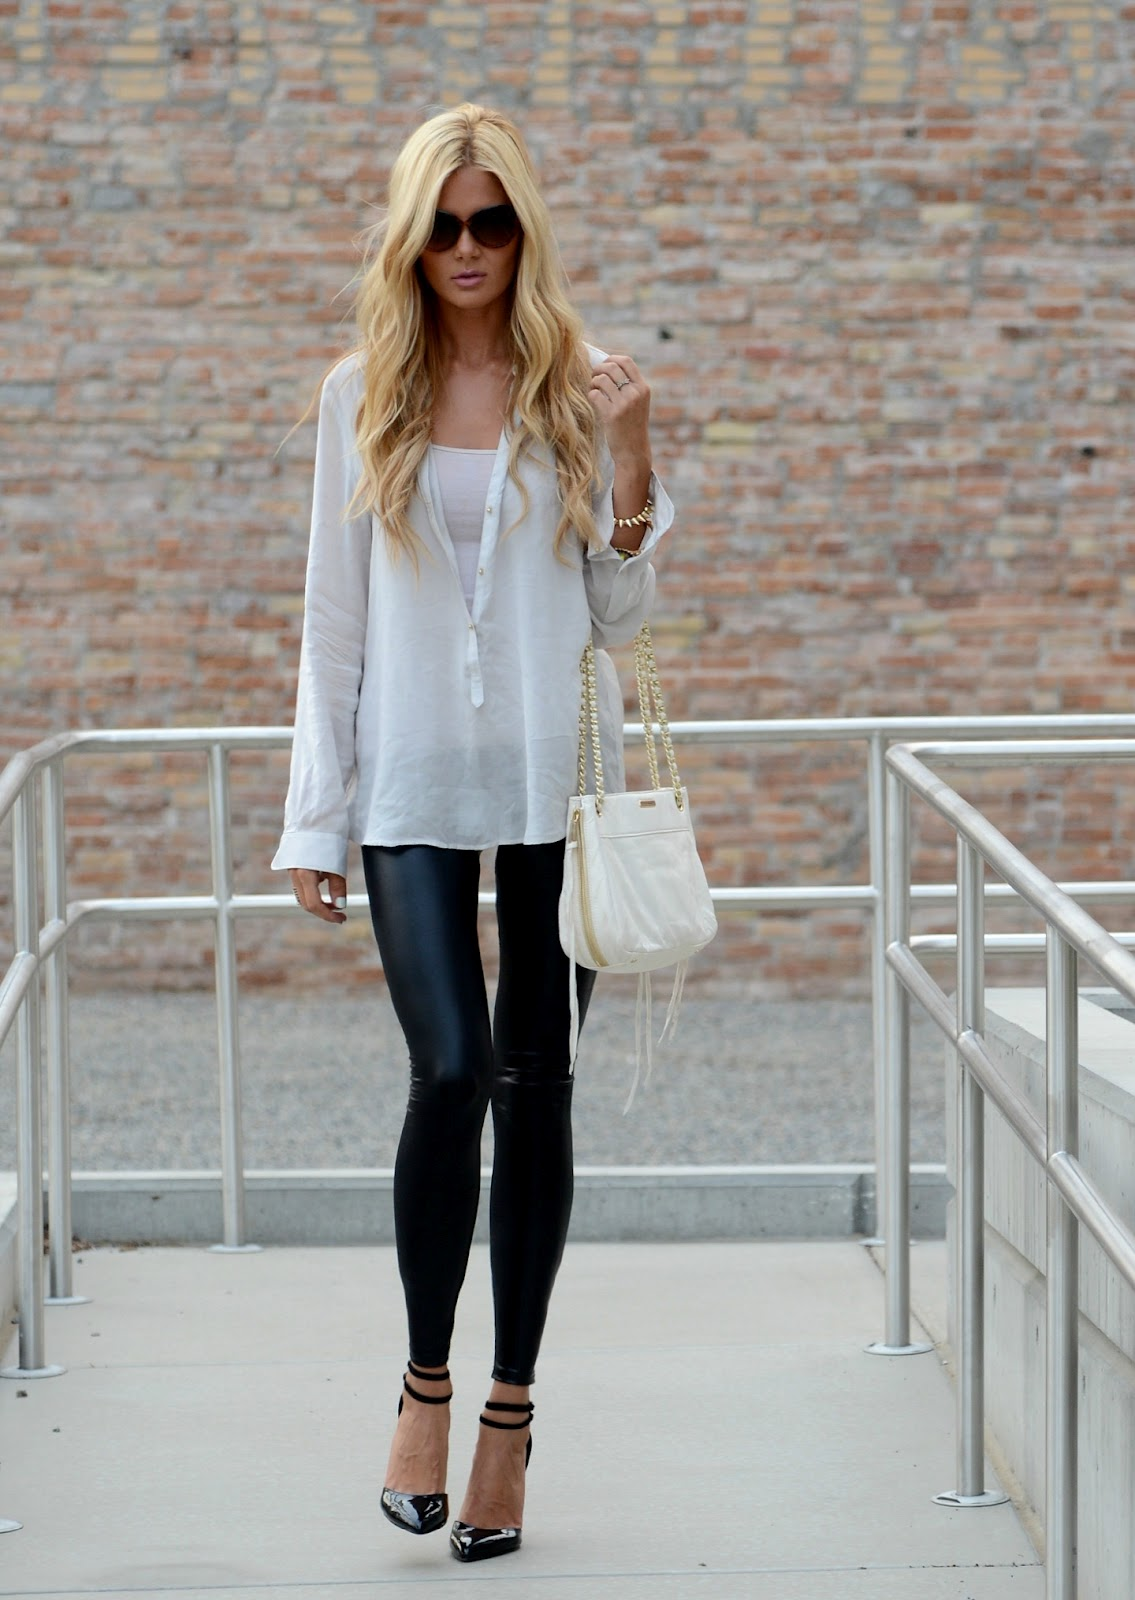 cute look- although not sure how my legs would look in fake leather pants hahahh